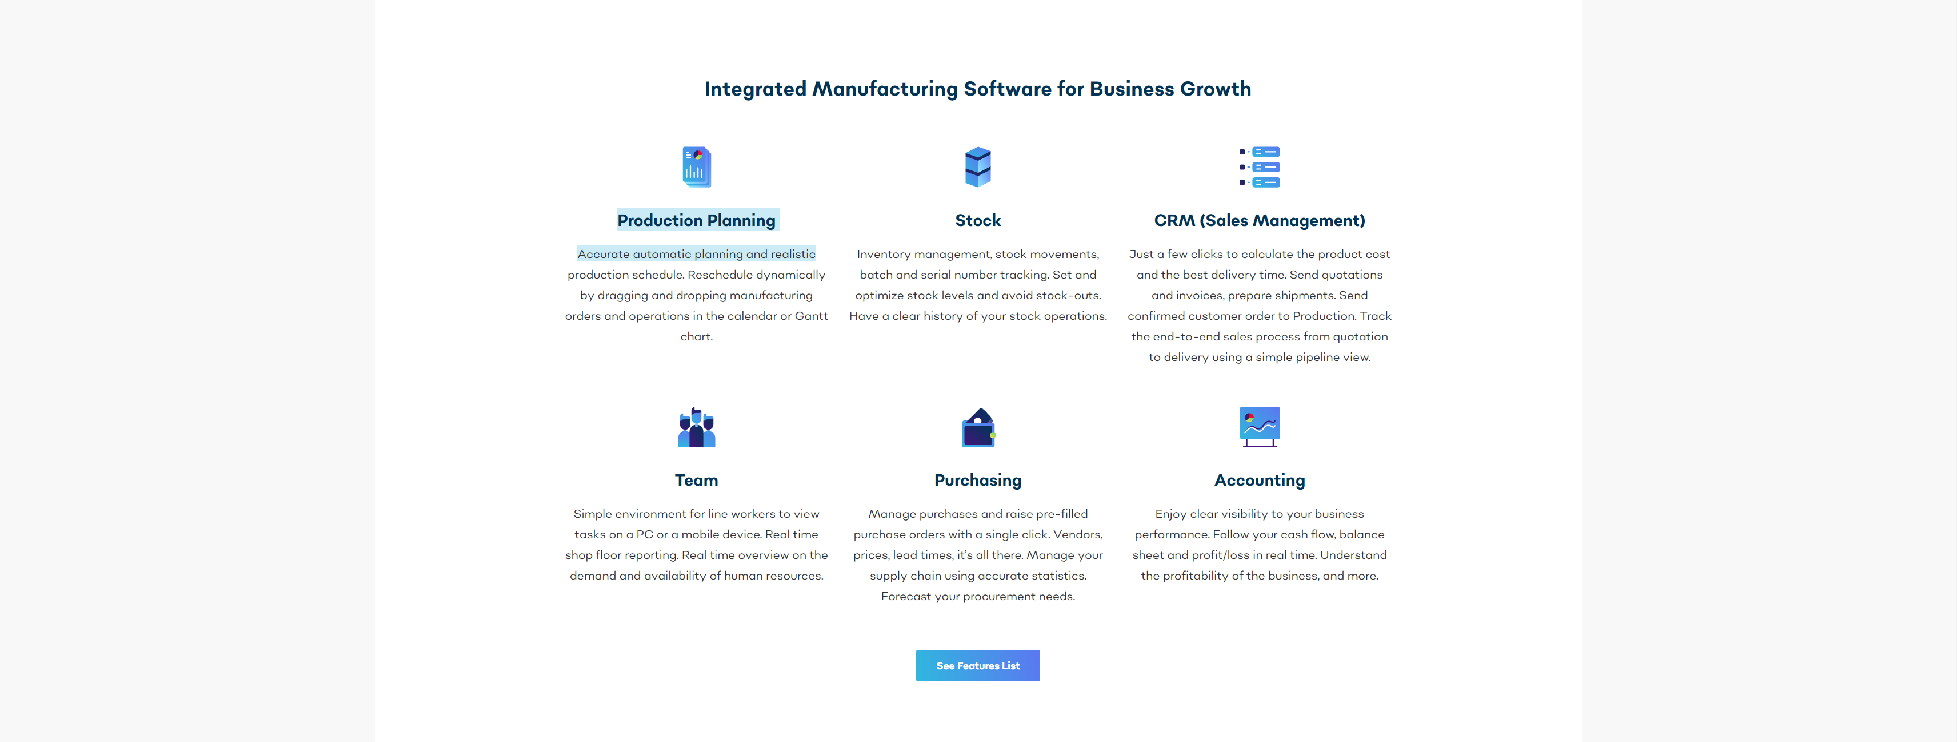 Top 7 Best Manufacturing Software for Small Business